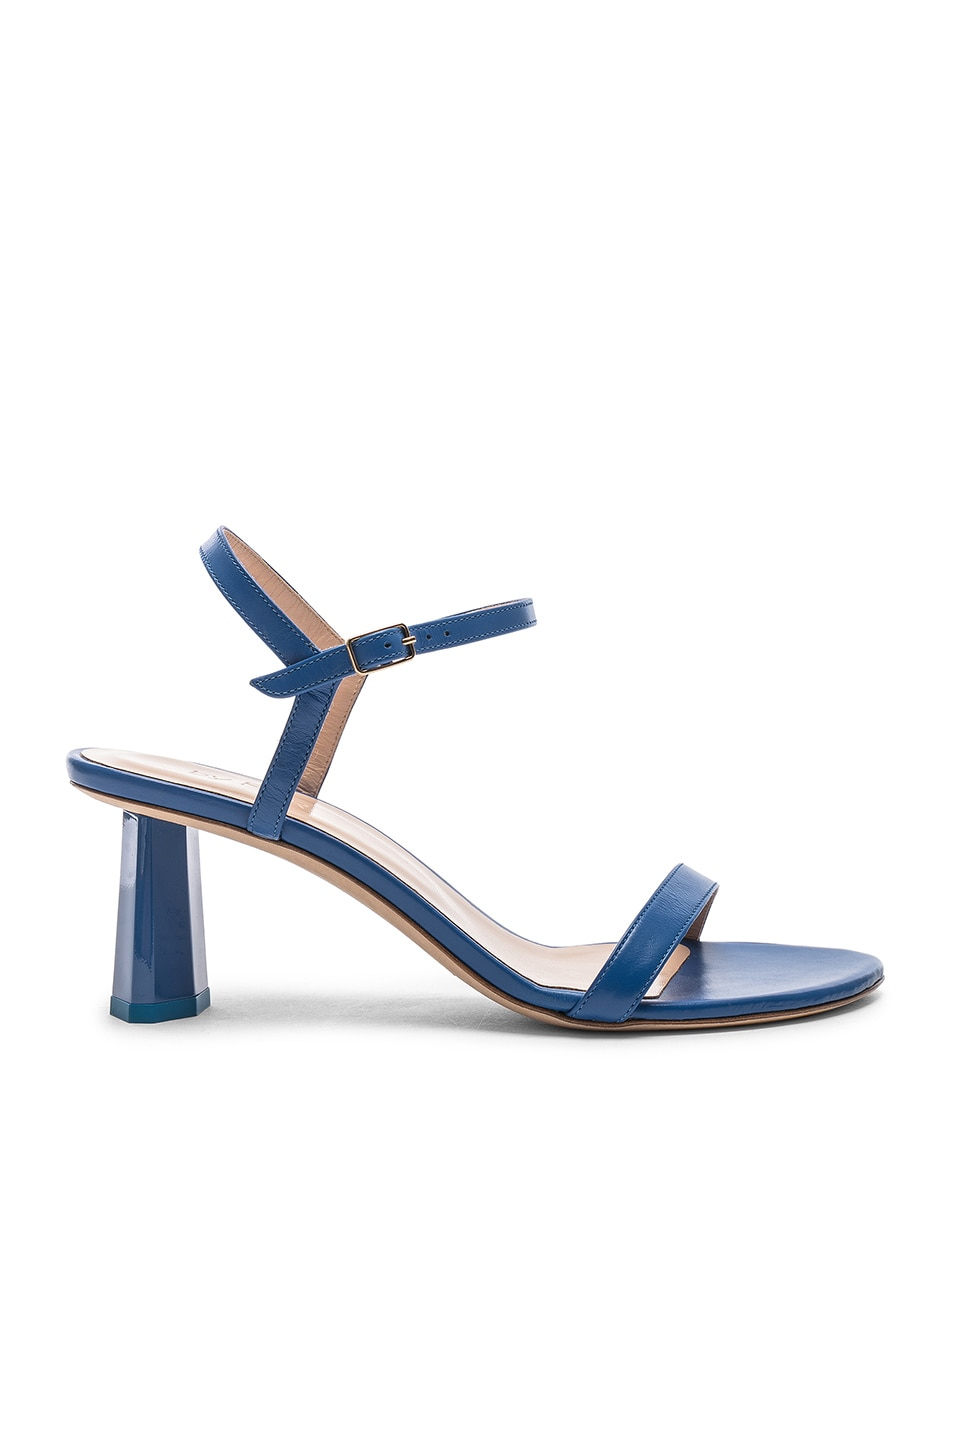 Image 1 of BY FAR Magnolia Sandal in Marine Blue Leather